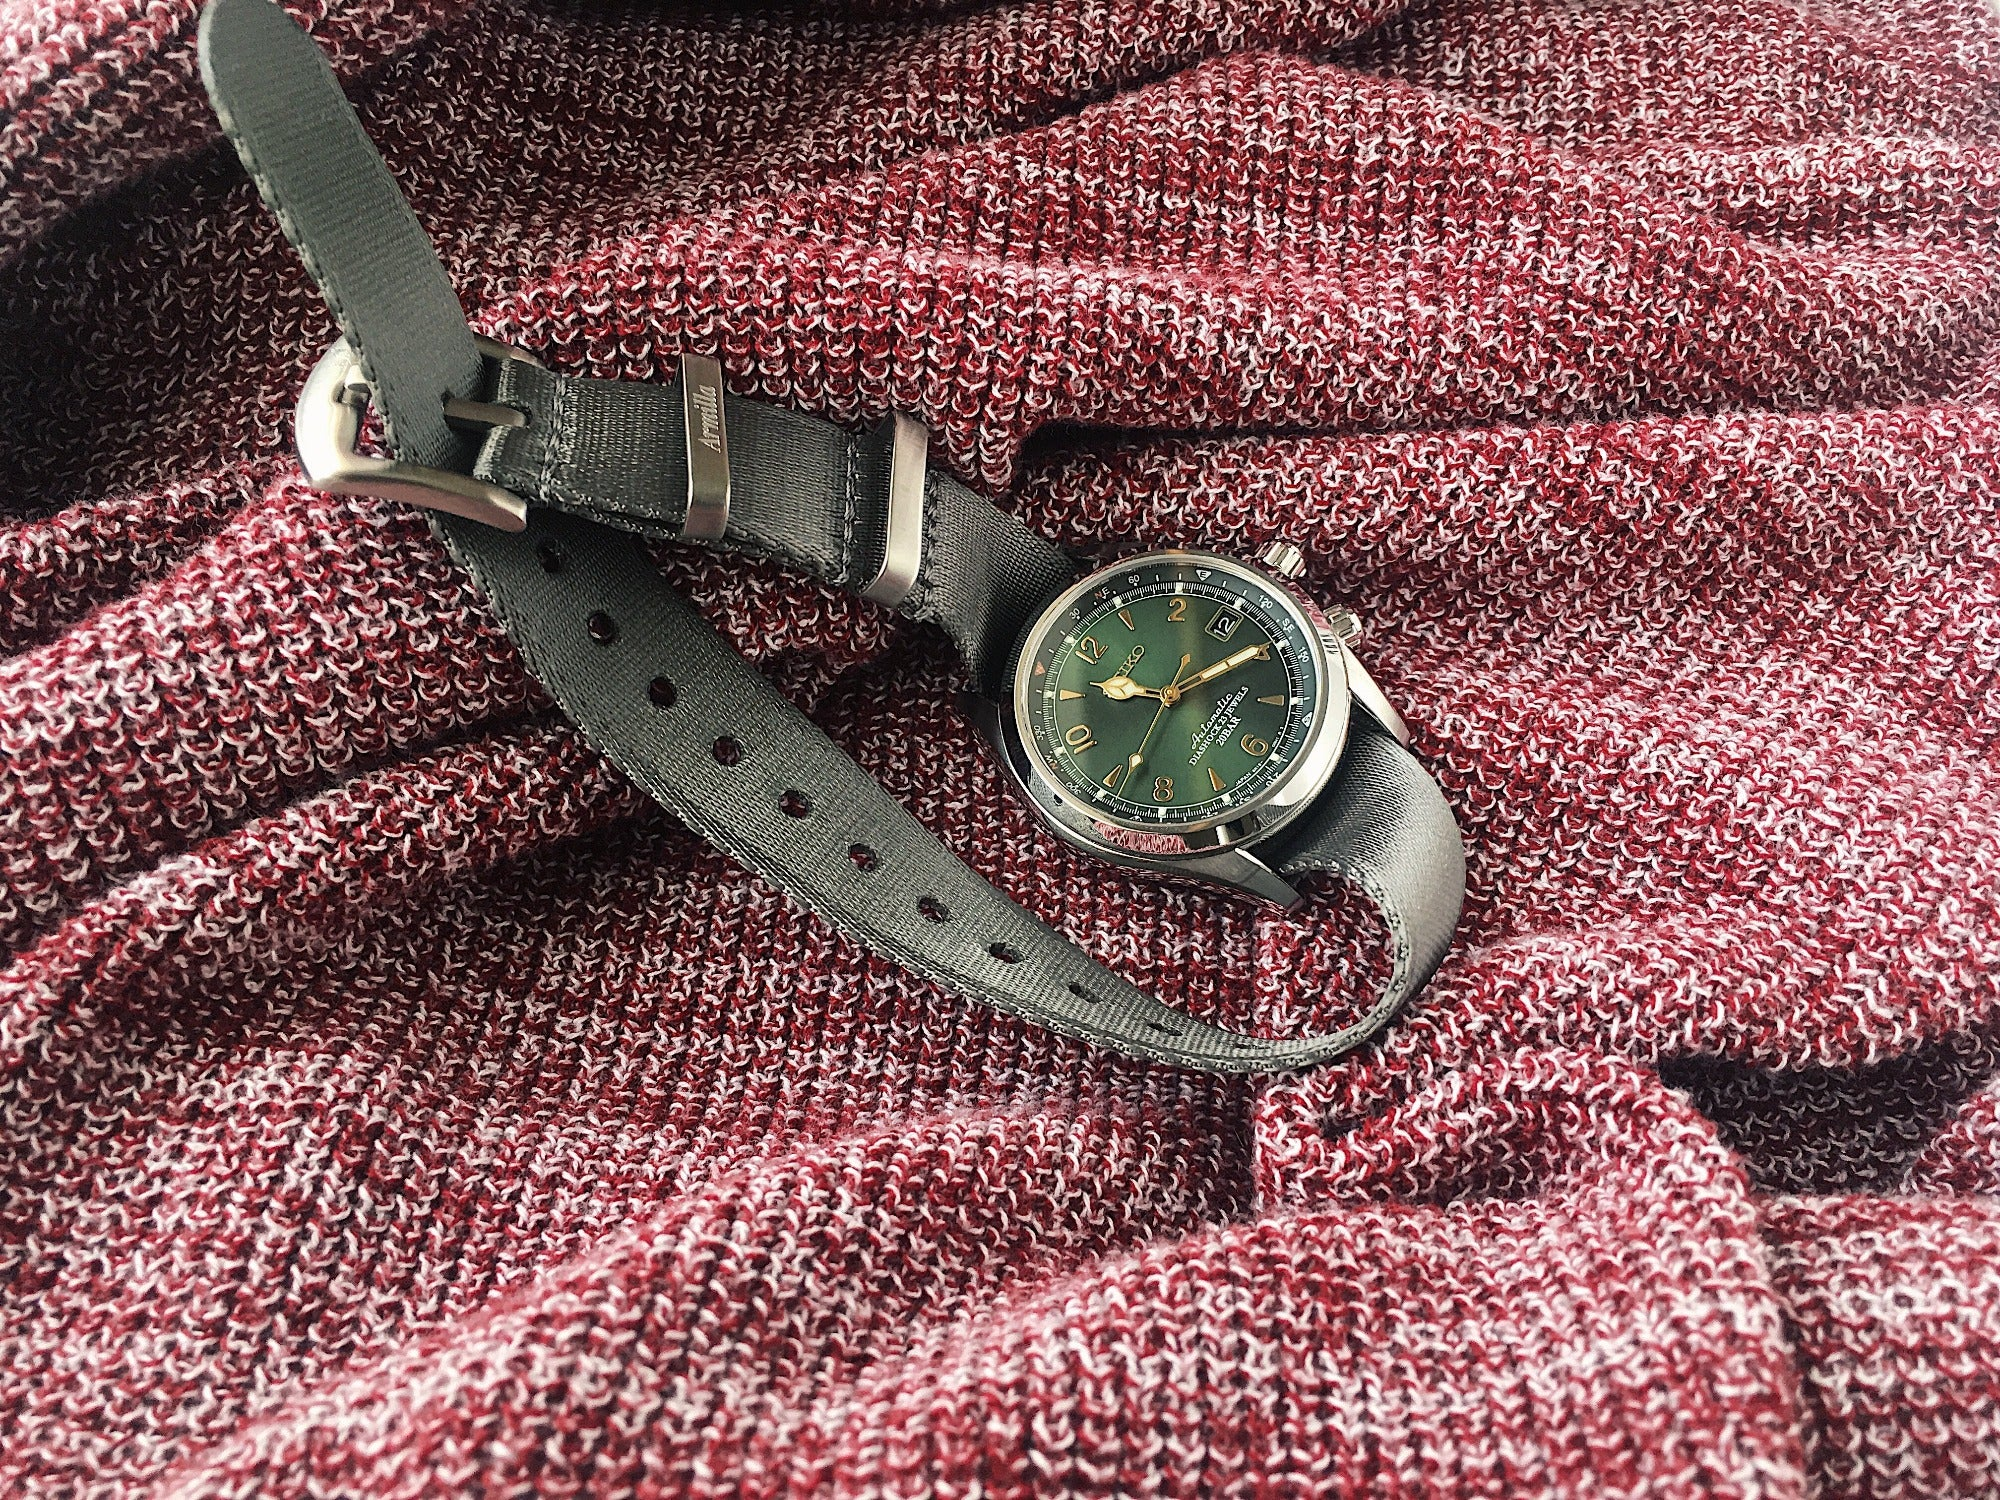 Slim Grey NATO Watch Strap by Armilla on Seiko Alpinist SARB017